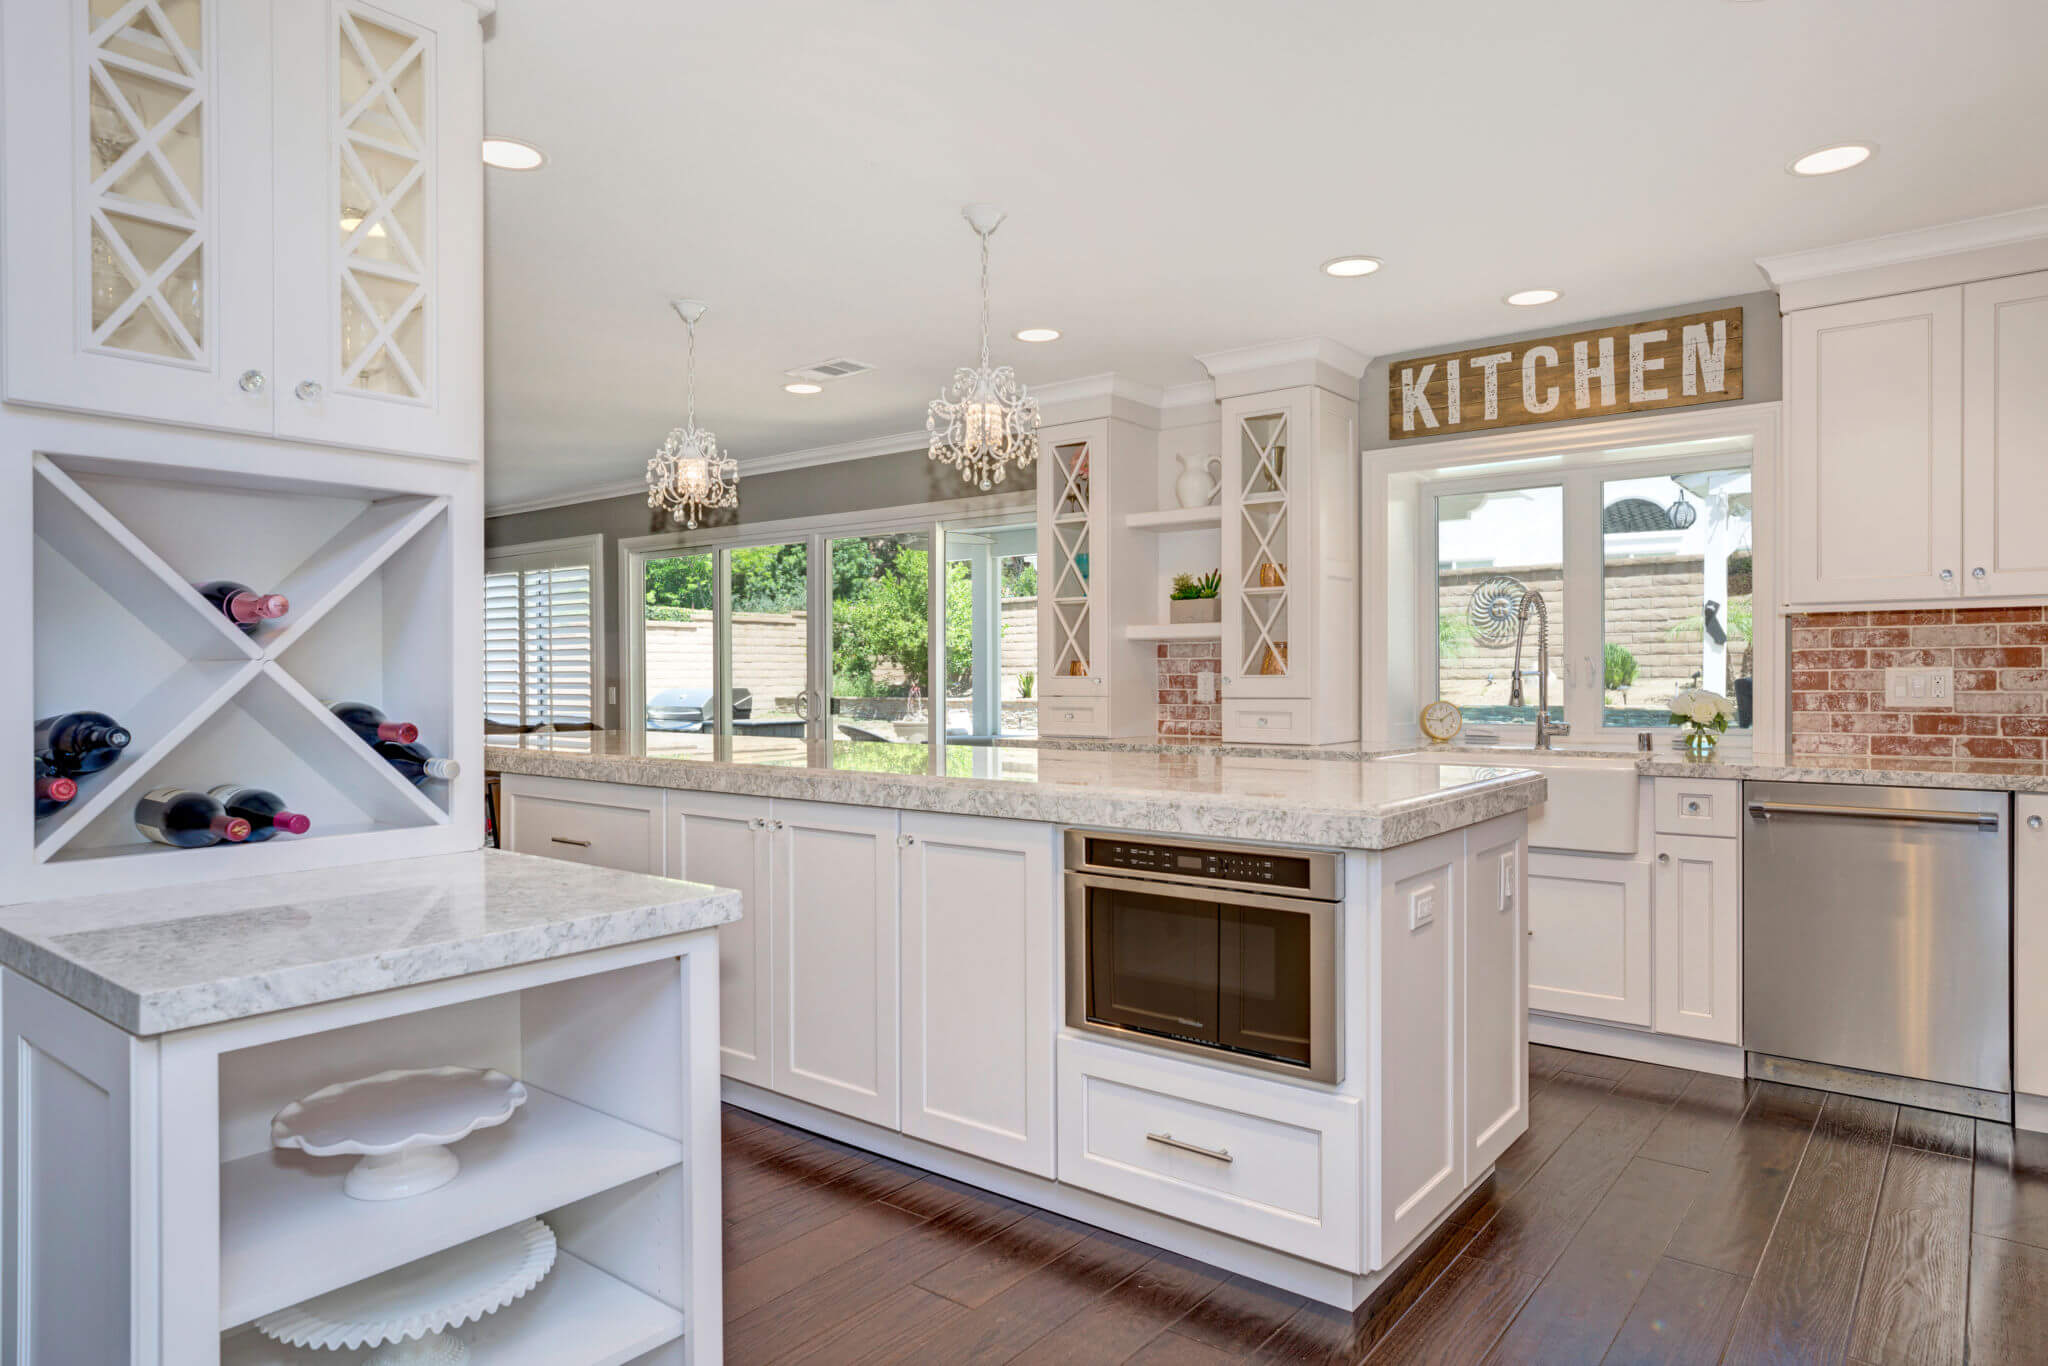 Kitchen Design Services Orange County, High End Kitchen Remodeling Orange County